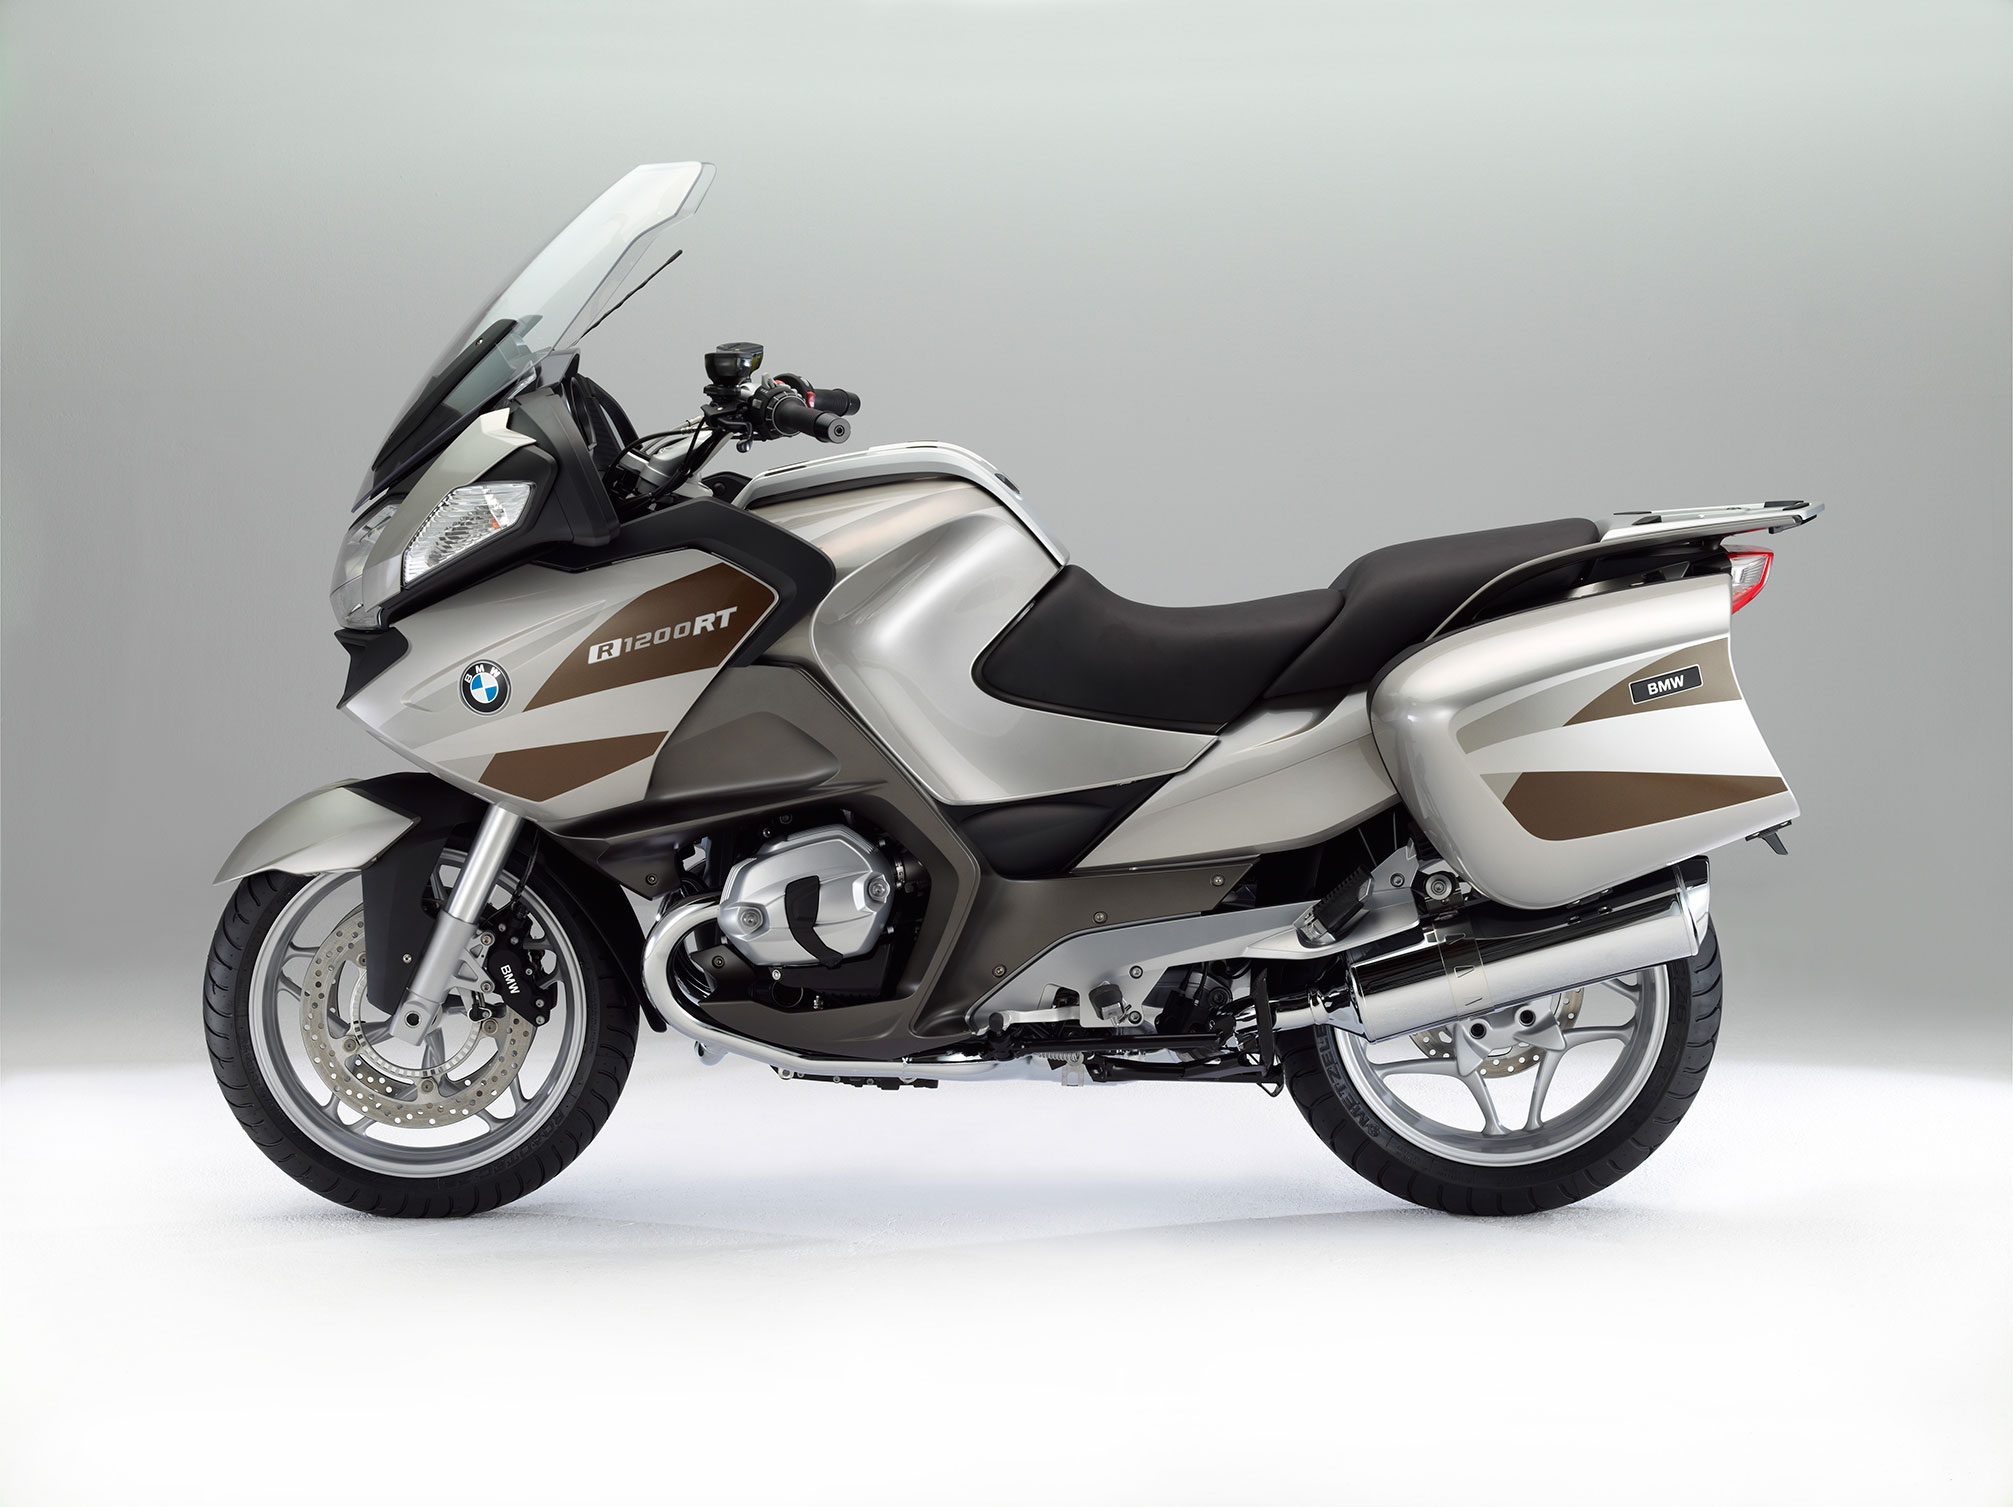 BMW R1200RT 2014 images #9061